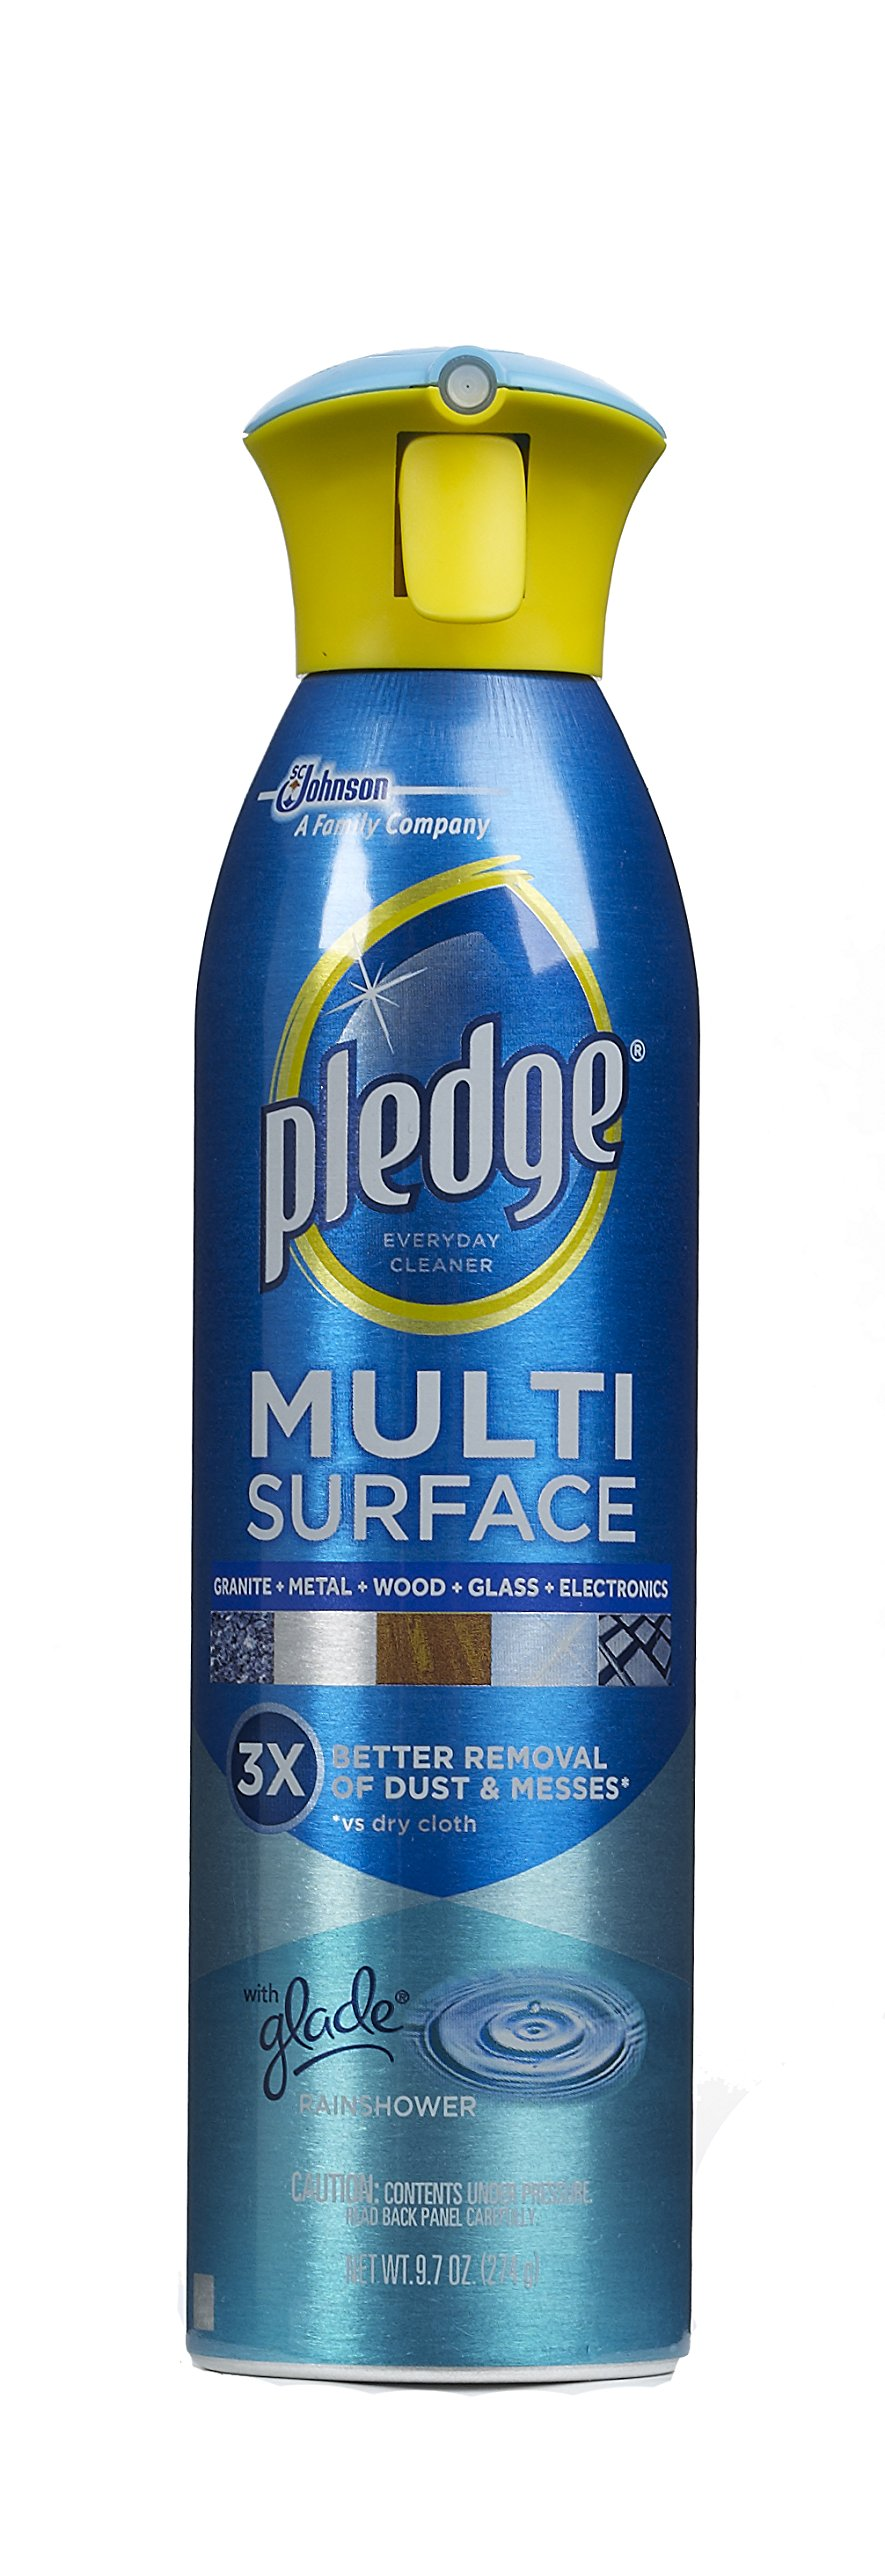 Pledge Multi-Surface Everyday Cleaner with Glade Rainshower (Aerosol, 9.7-Ounce) by Pledge